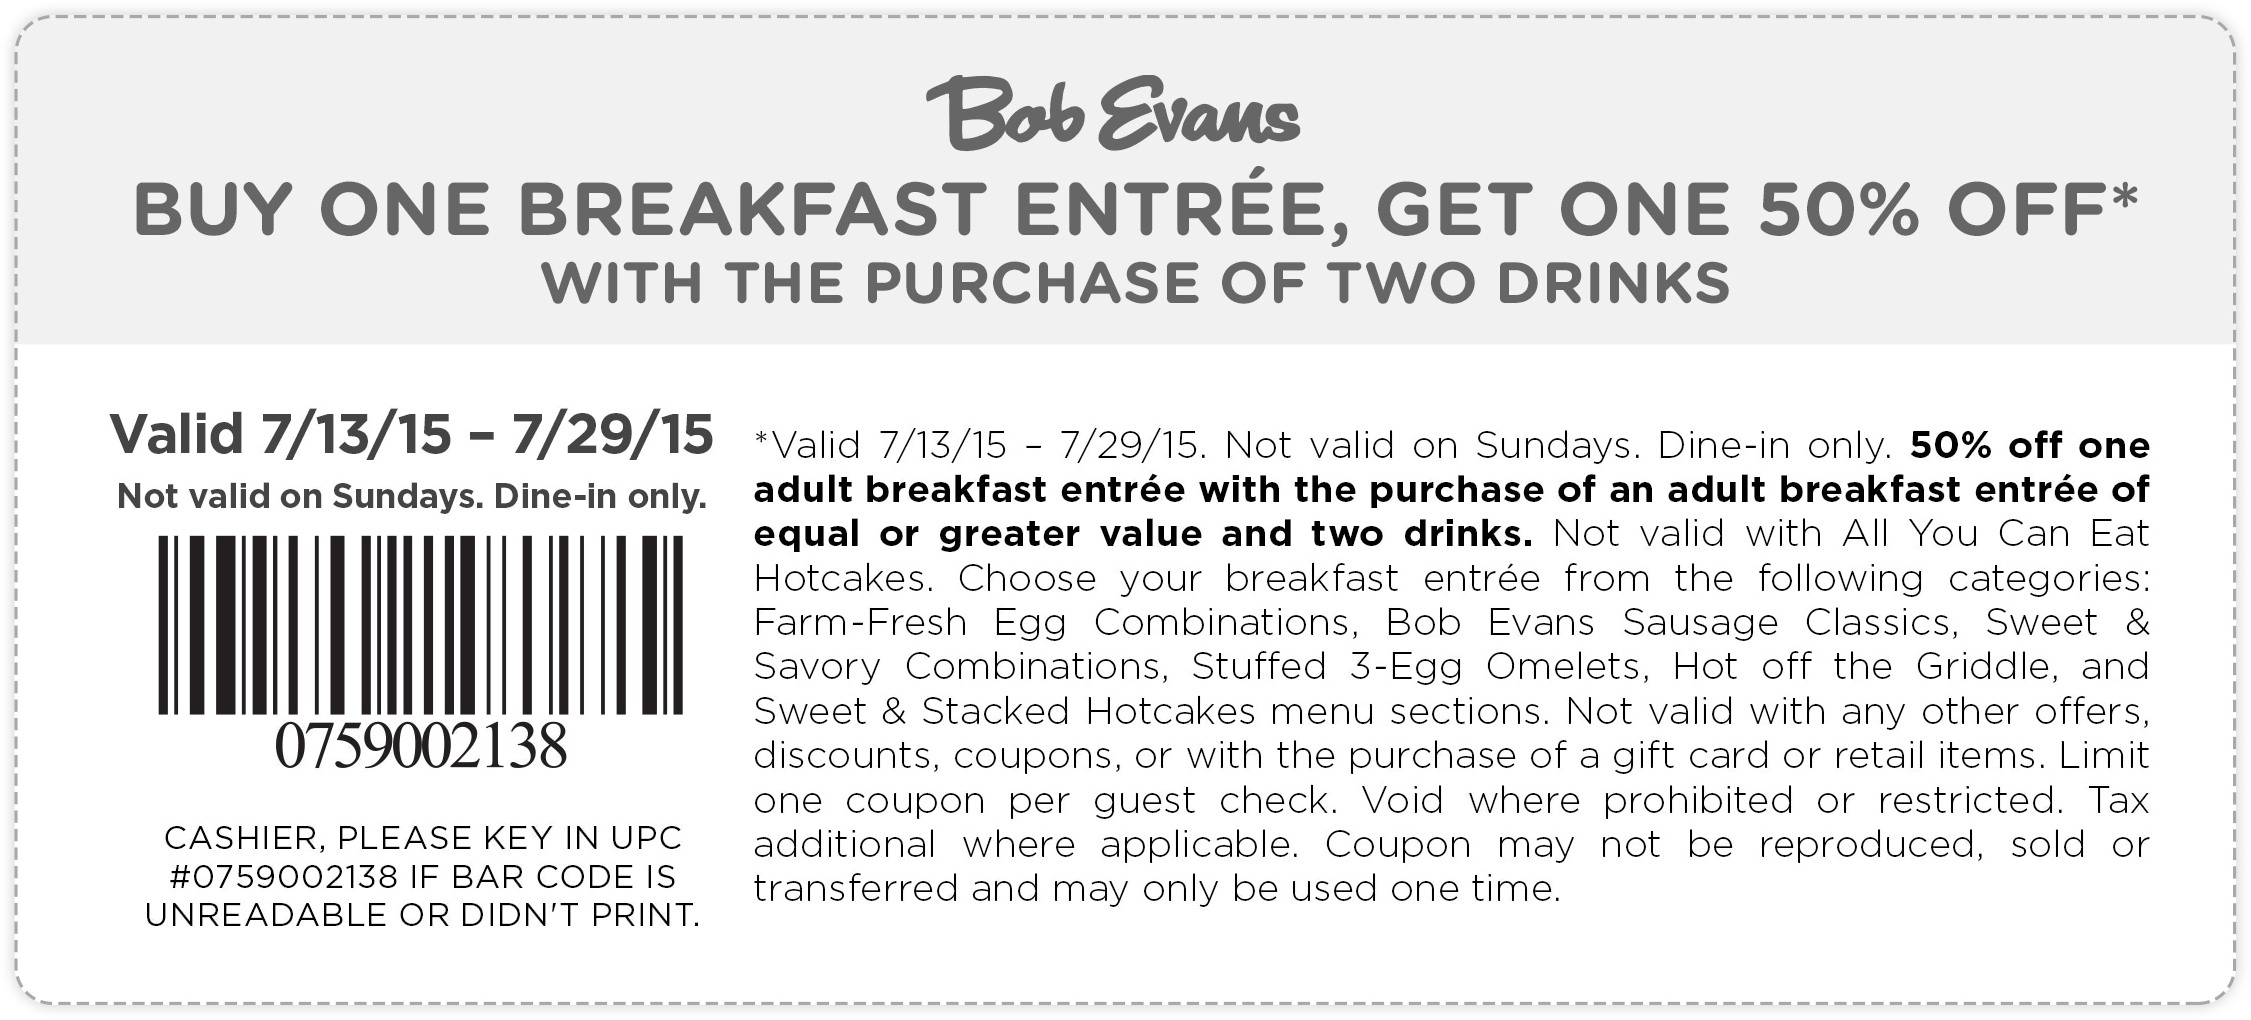 Bob Evans Coupon July 2019 Second breakfast entree 50% off at Bob Evans